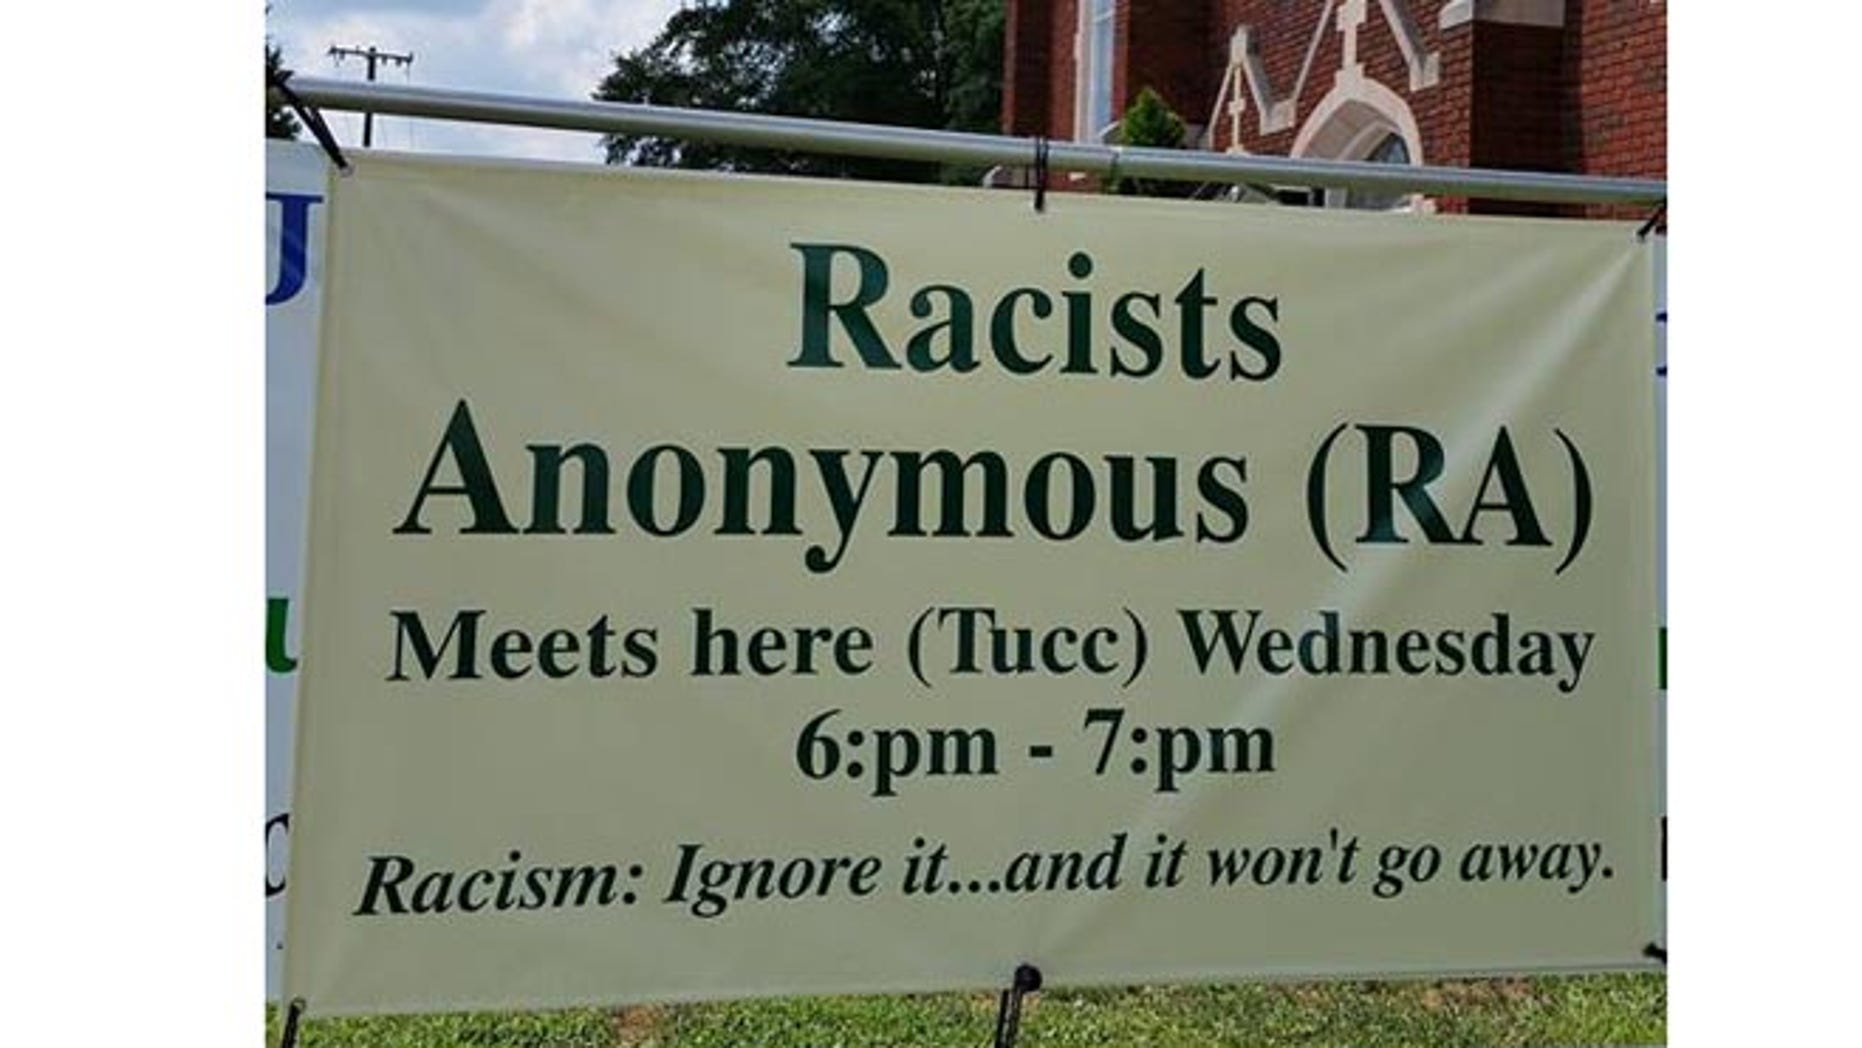 Sign outside Trinity United Church of Christ in Concord, N.C. (Rev. J. Nathan King)